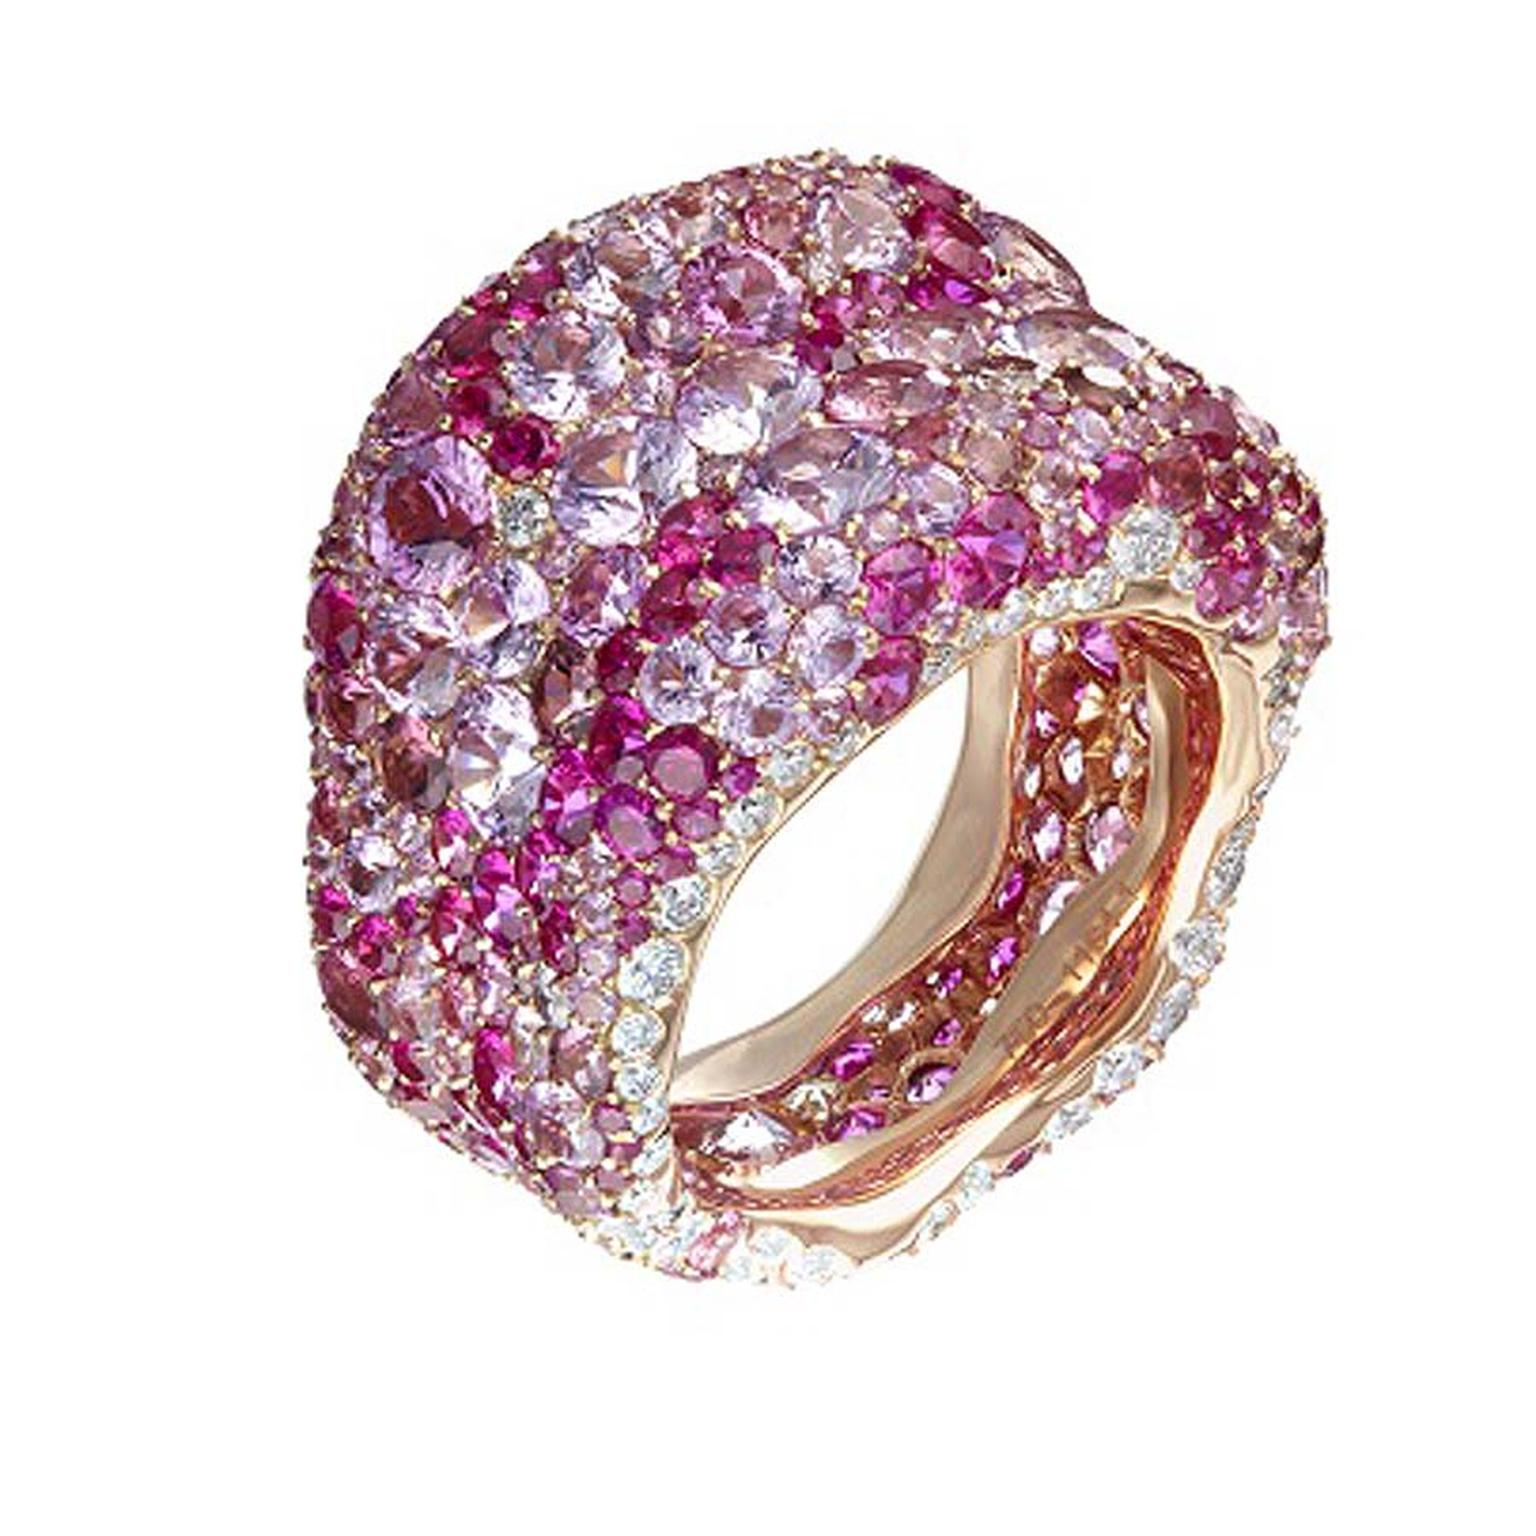 FabergeEmotionrings003